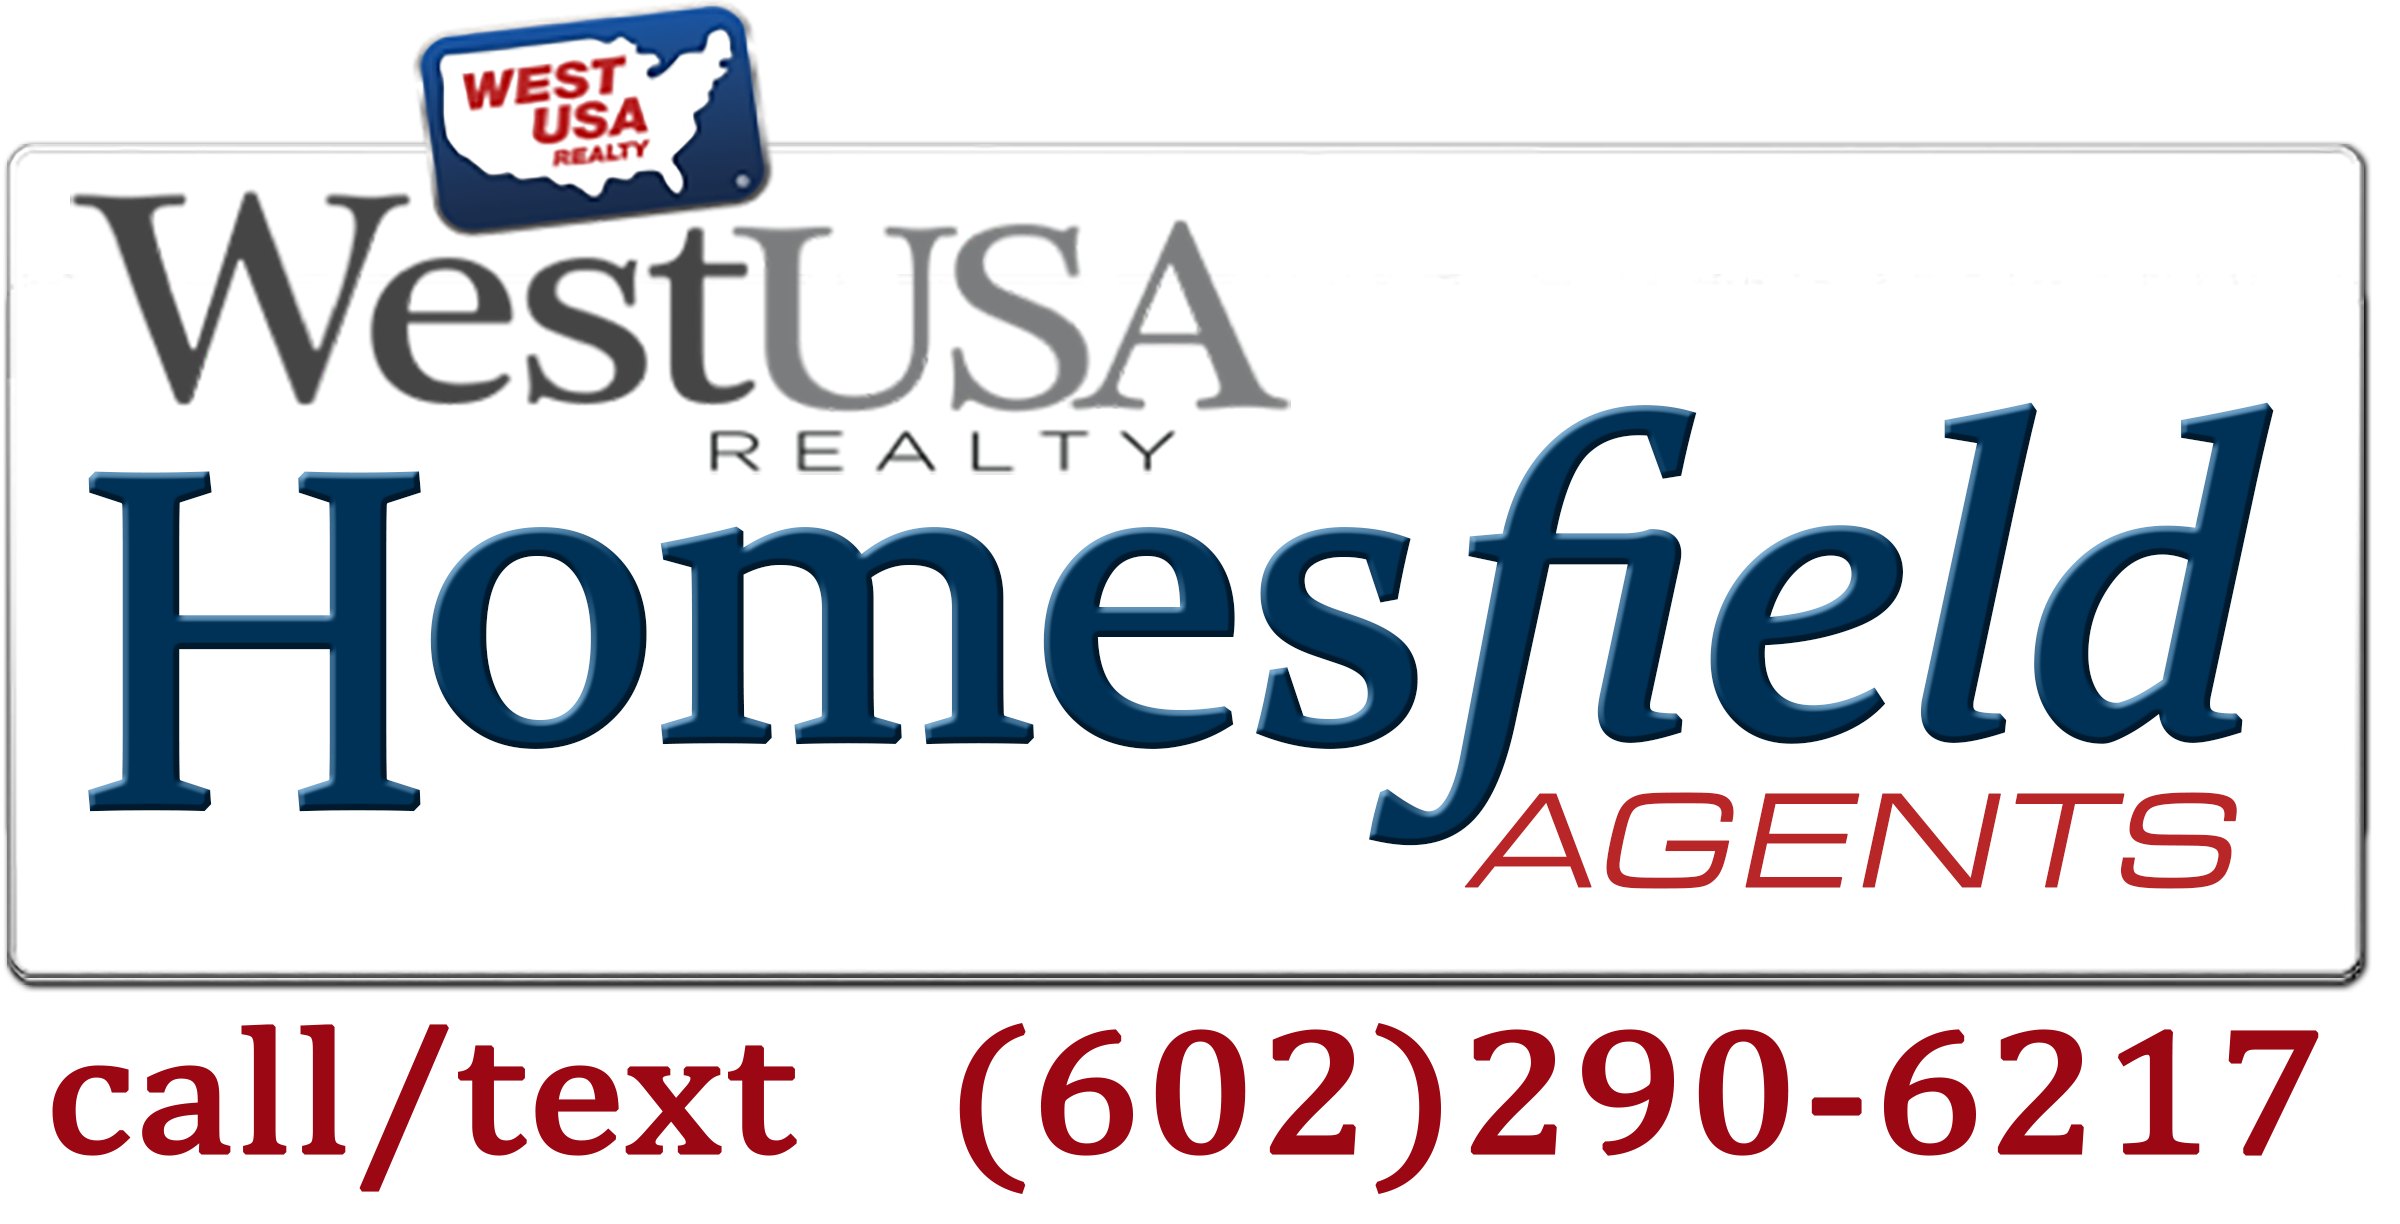 Homesfield Agents of West USA Realty